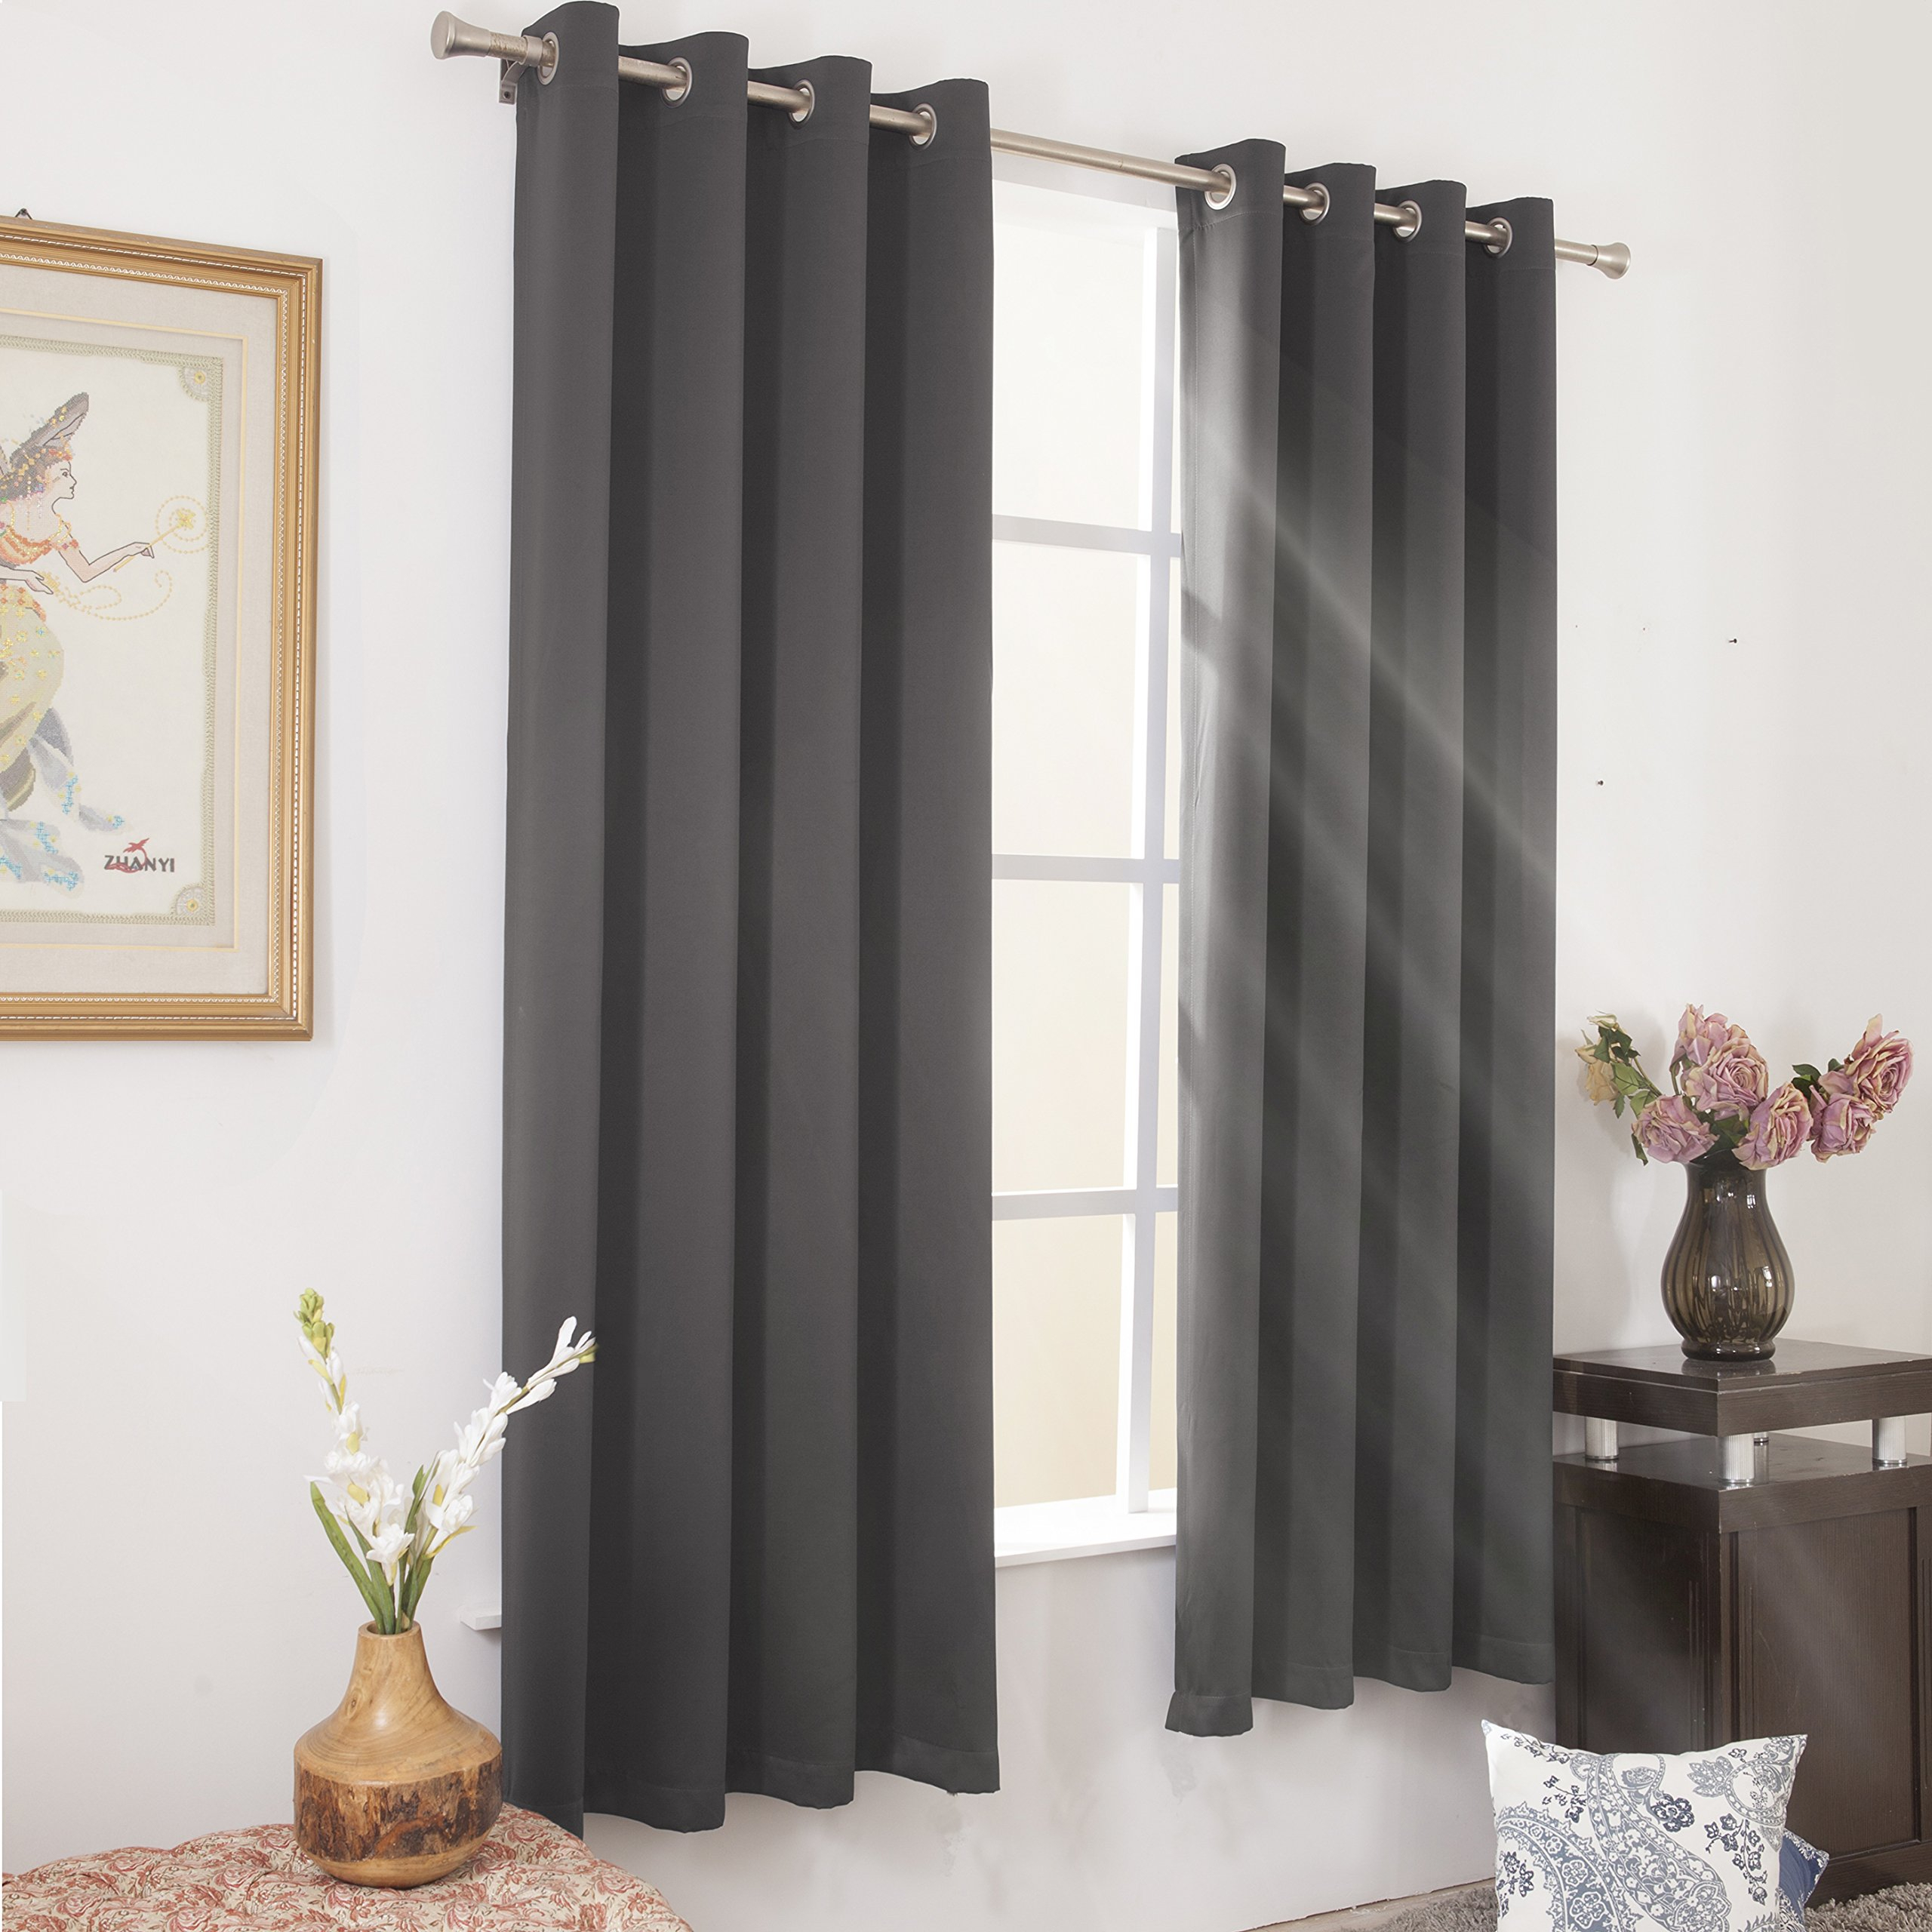 Cheap Light Grey Blackout Curtains, Find Light Grey Blackout for Ultimate Blackout Short Length Grommet Panels (Image 7 of 30)